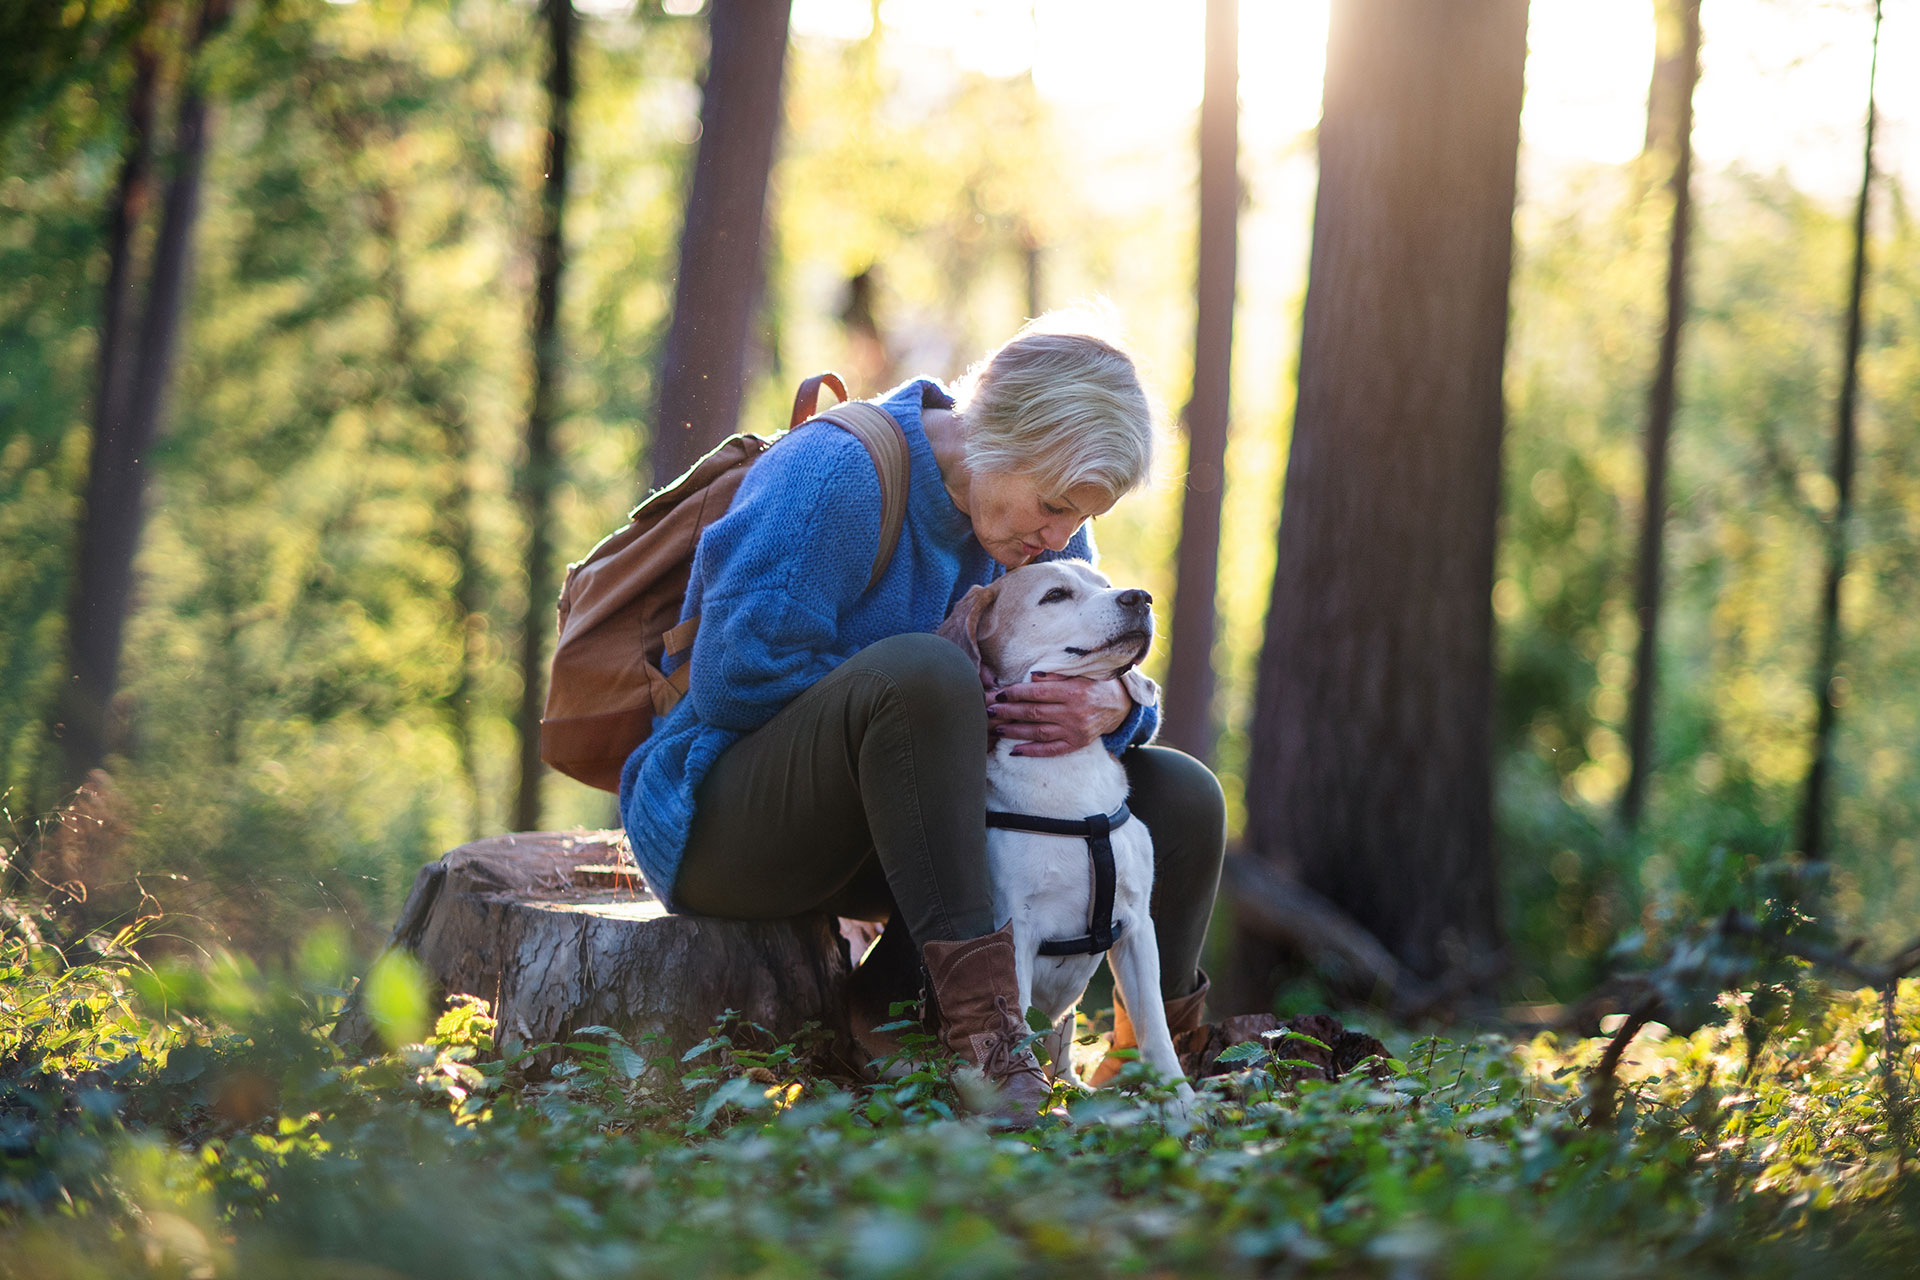 A woman with short grey hair sits on a tree stump mid-hike and kisses her dog on the forehead.